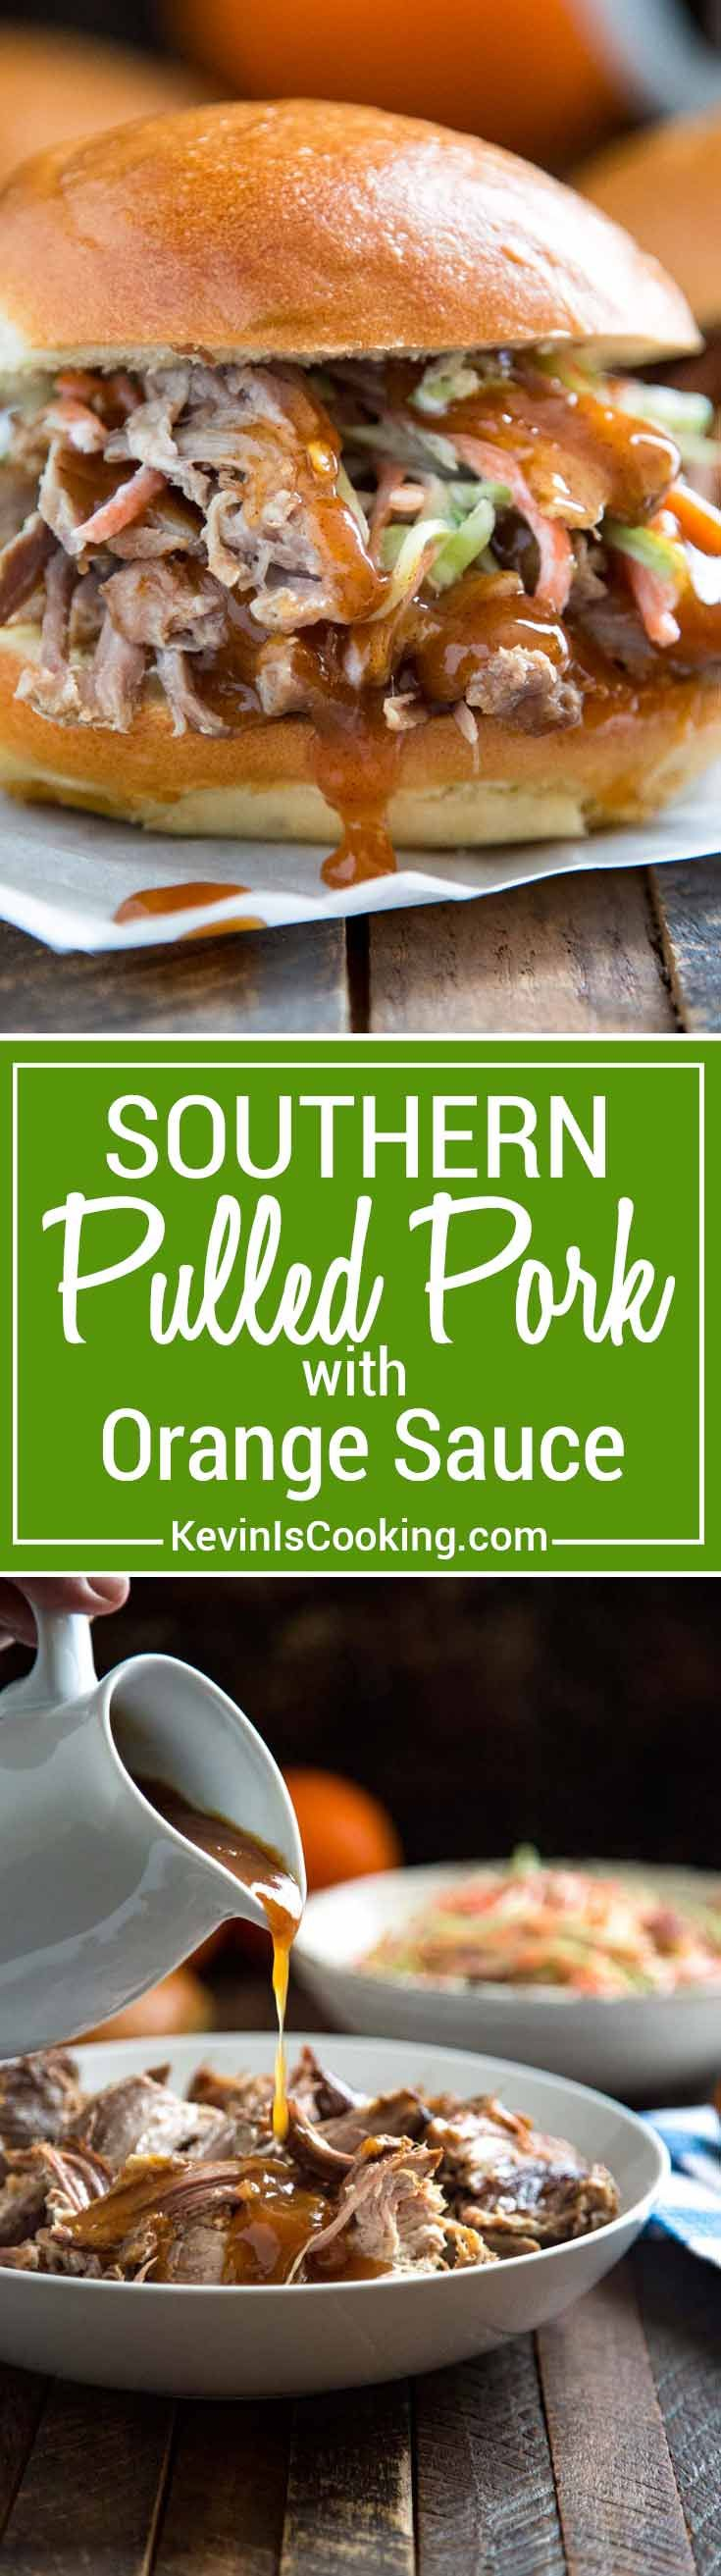 Southern Pulled Pork with Orange Sauce - marinated pulled pork served with an aromatic sauce made of orange juice, zest, cinnamon and cloves. Perfect with roasted vegetables or in a sandwich. This sauce is EVERYTHING. via @keviniscooking